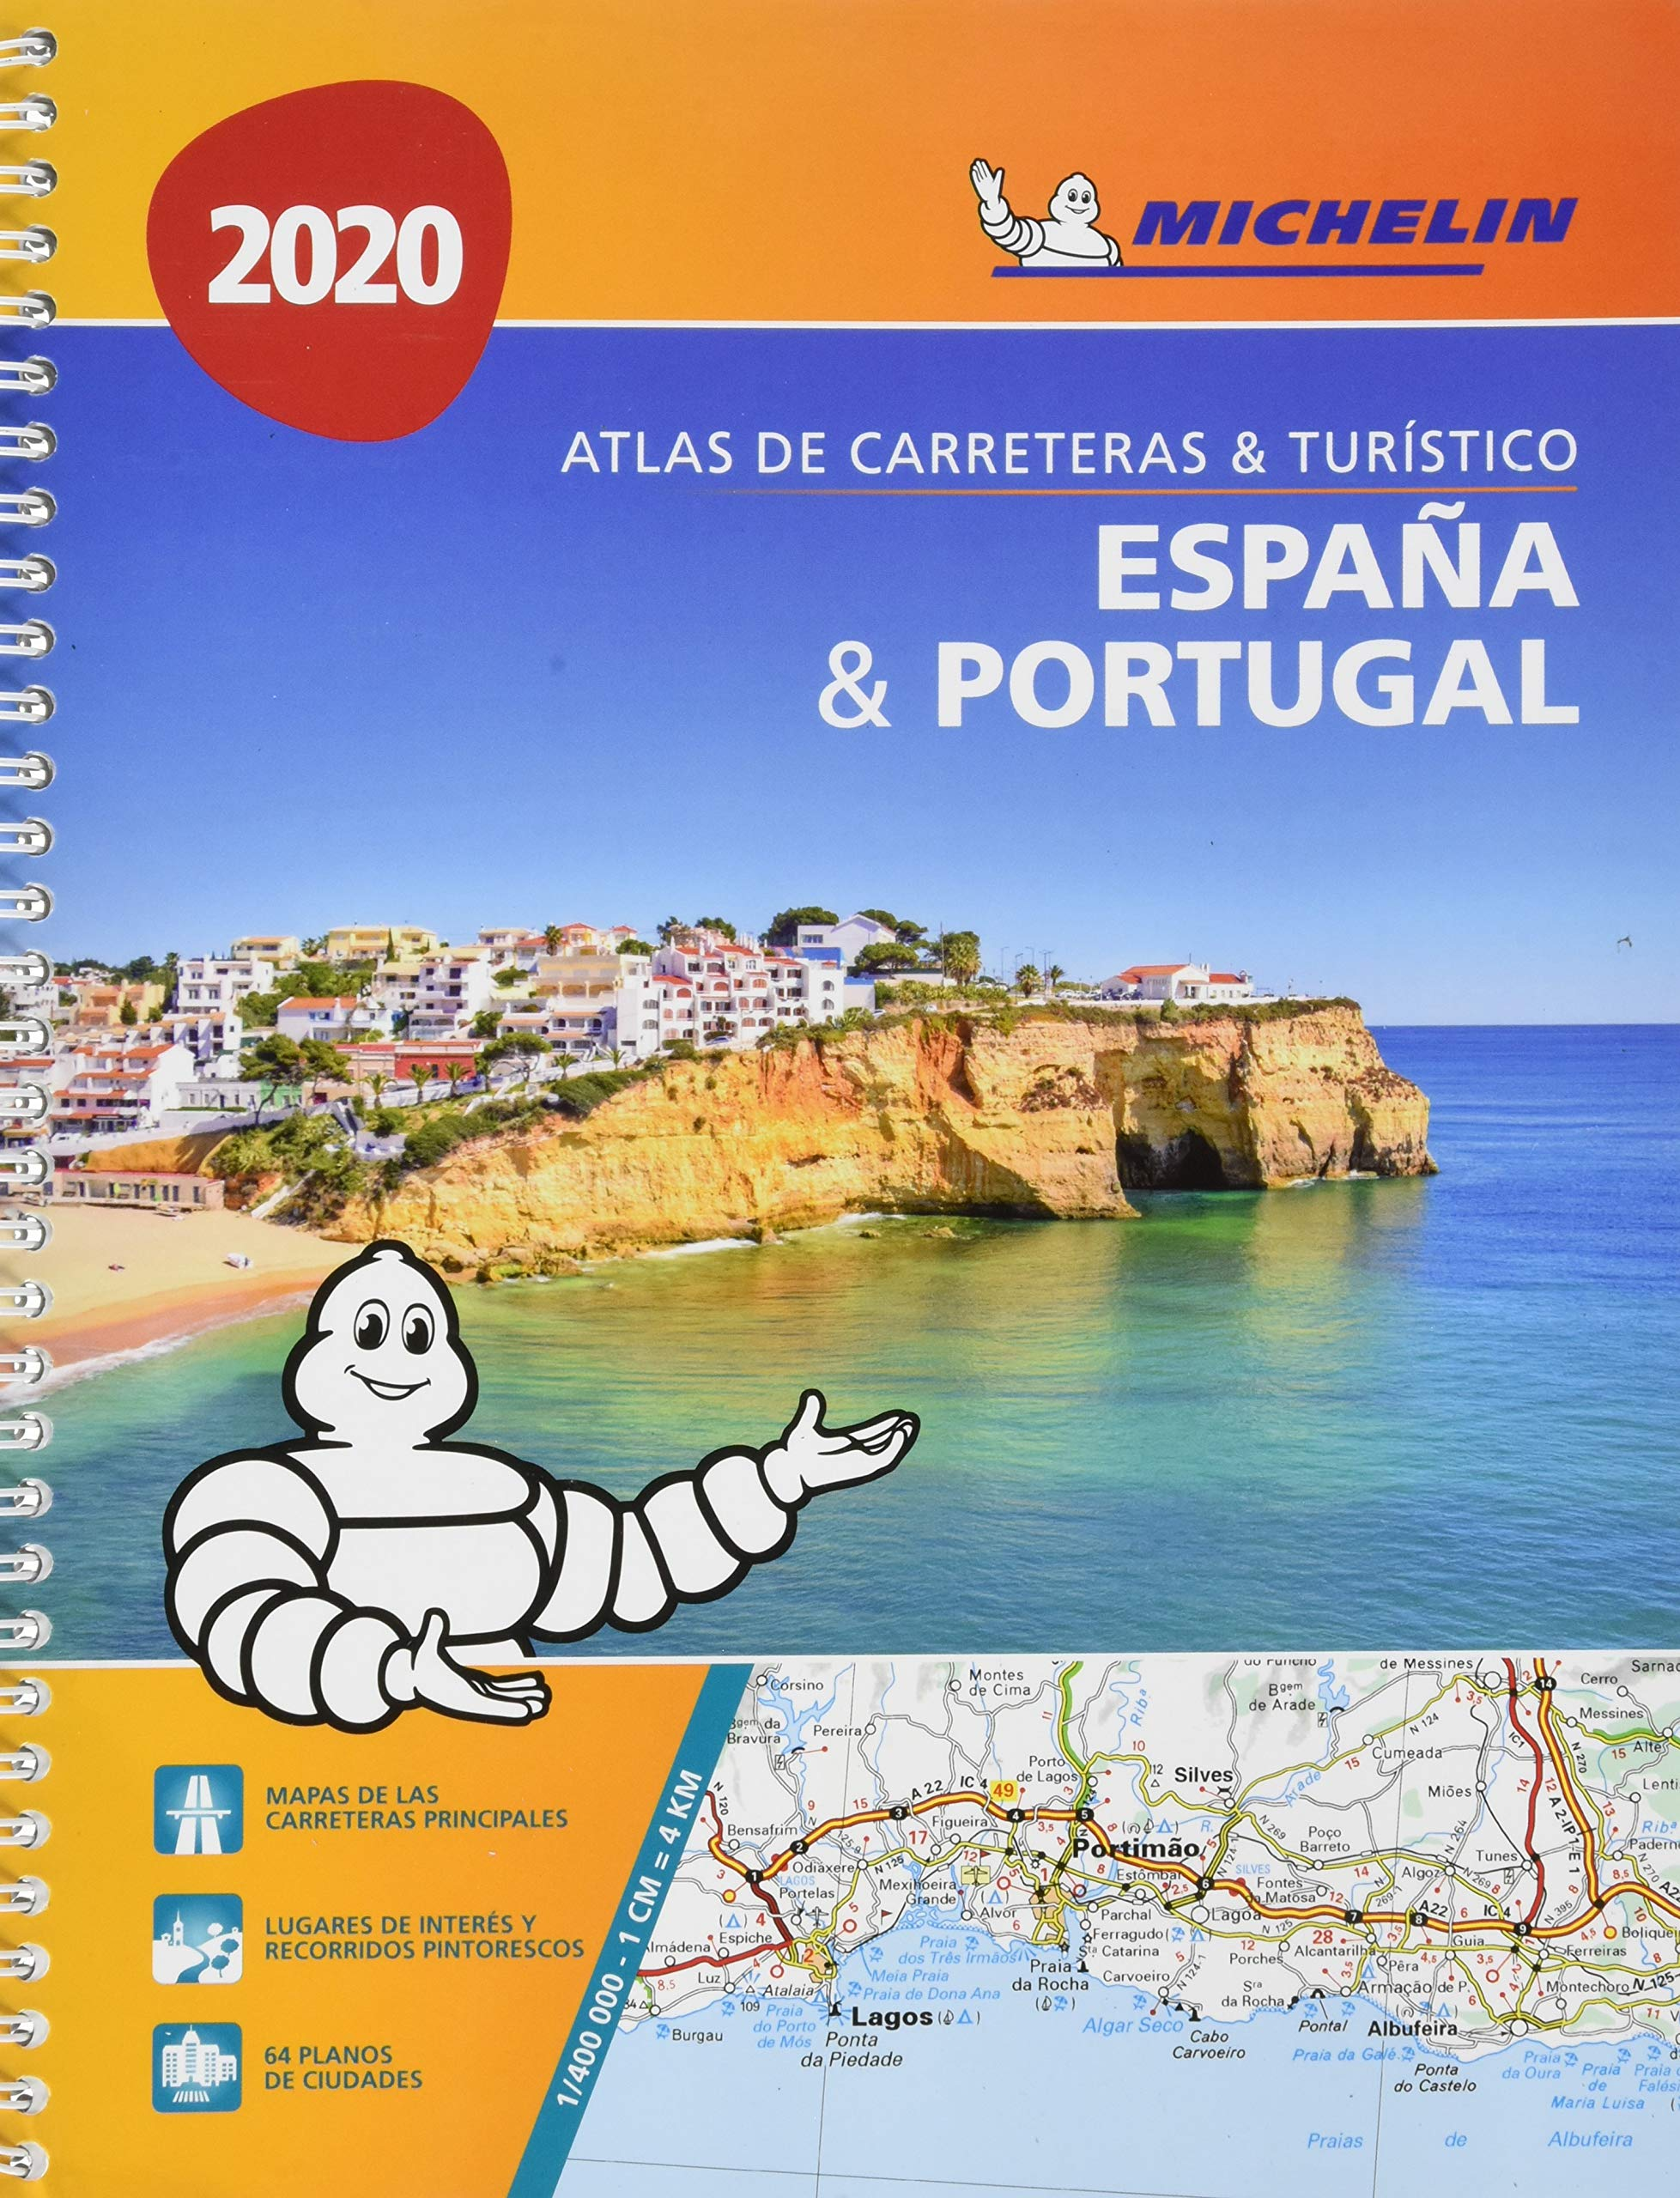 España & Portugal formato A-4 Atlas de carreteras y turístico Atlas de carreteras Michelin: Amazon.es: MICHELIN: Libros